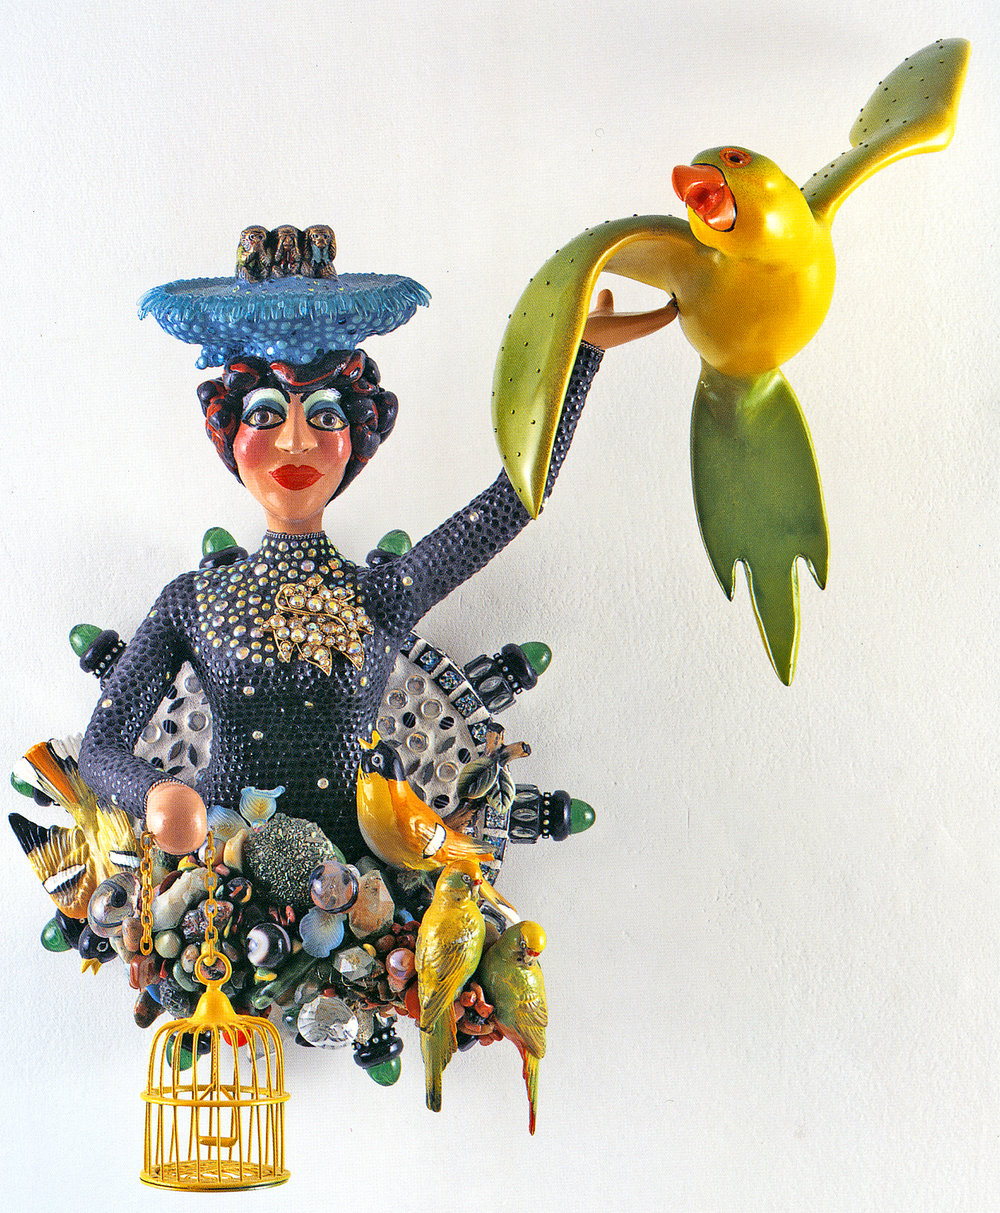 Bye, Bye, Birdie , 2003. Photo: Gus Gustafson. This work has a particular resonance for me; the sparkly brooch belonged to my mother, Hazel Flanagan. After she passed away, I shared her cache of costume jewelry with Judy and this piece found its way into a sculpture.